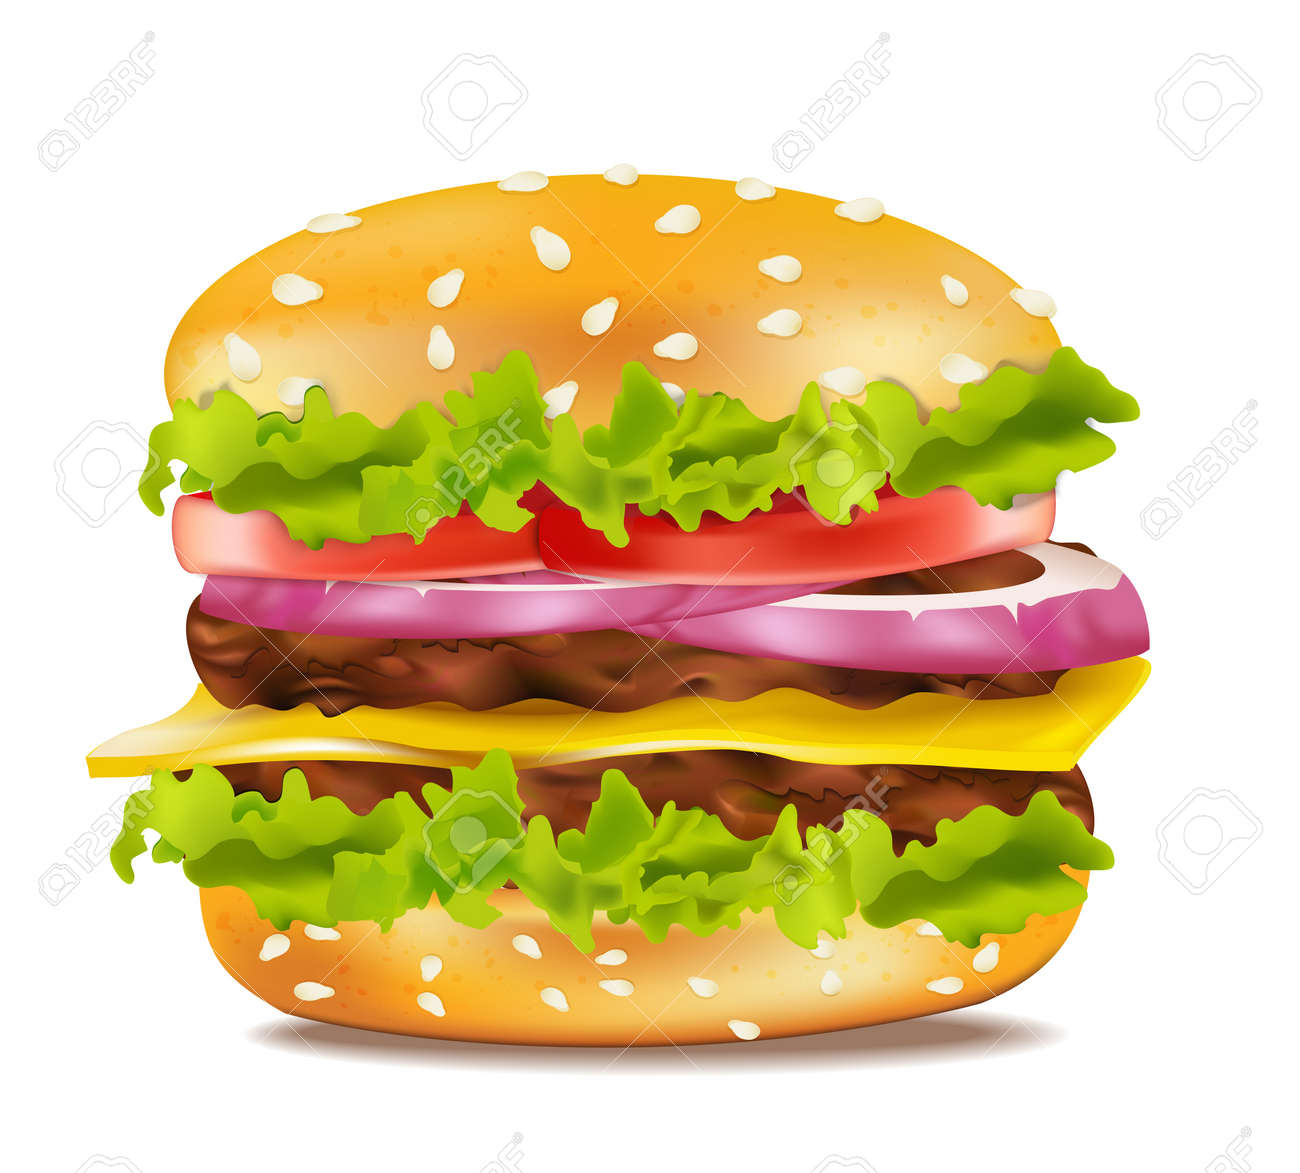 Vector cheeseburger on a white background - 9549740